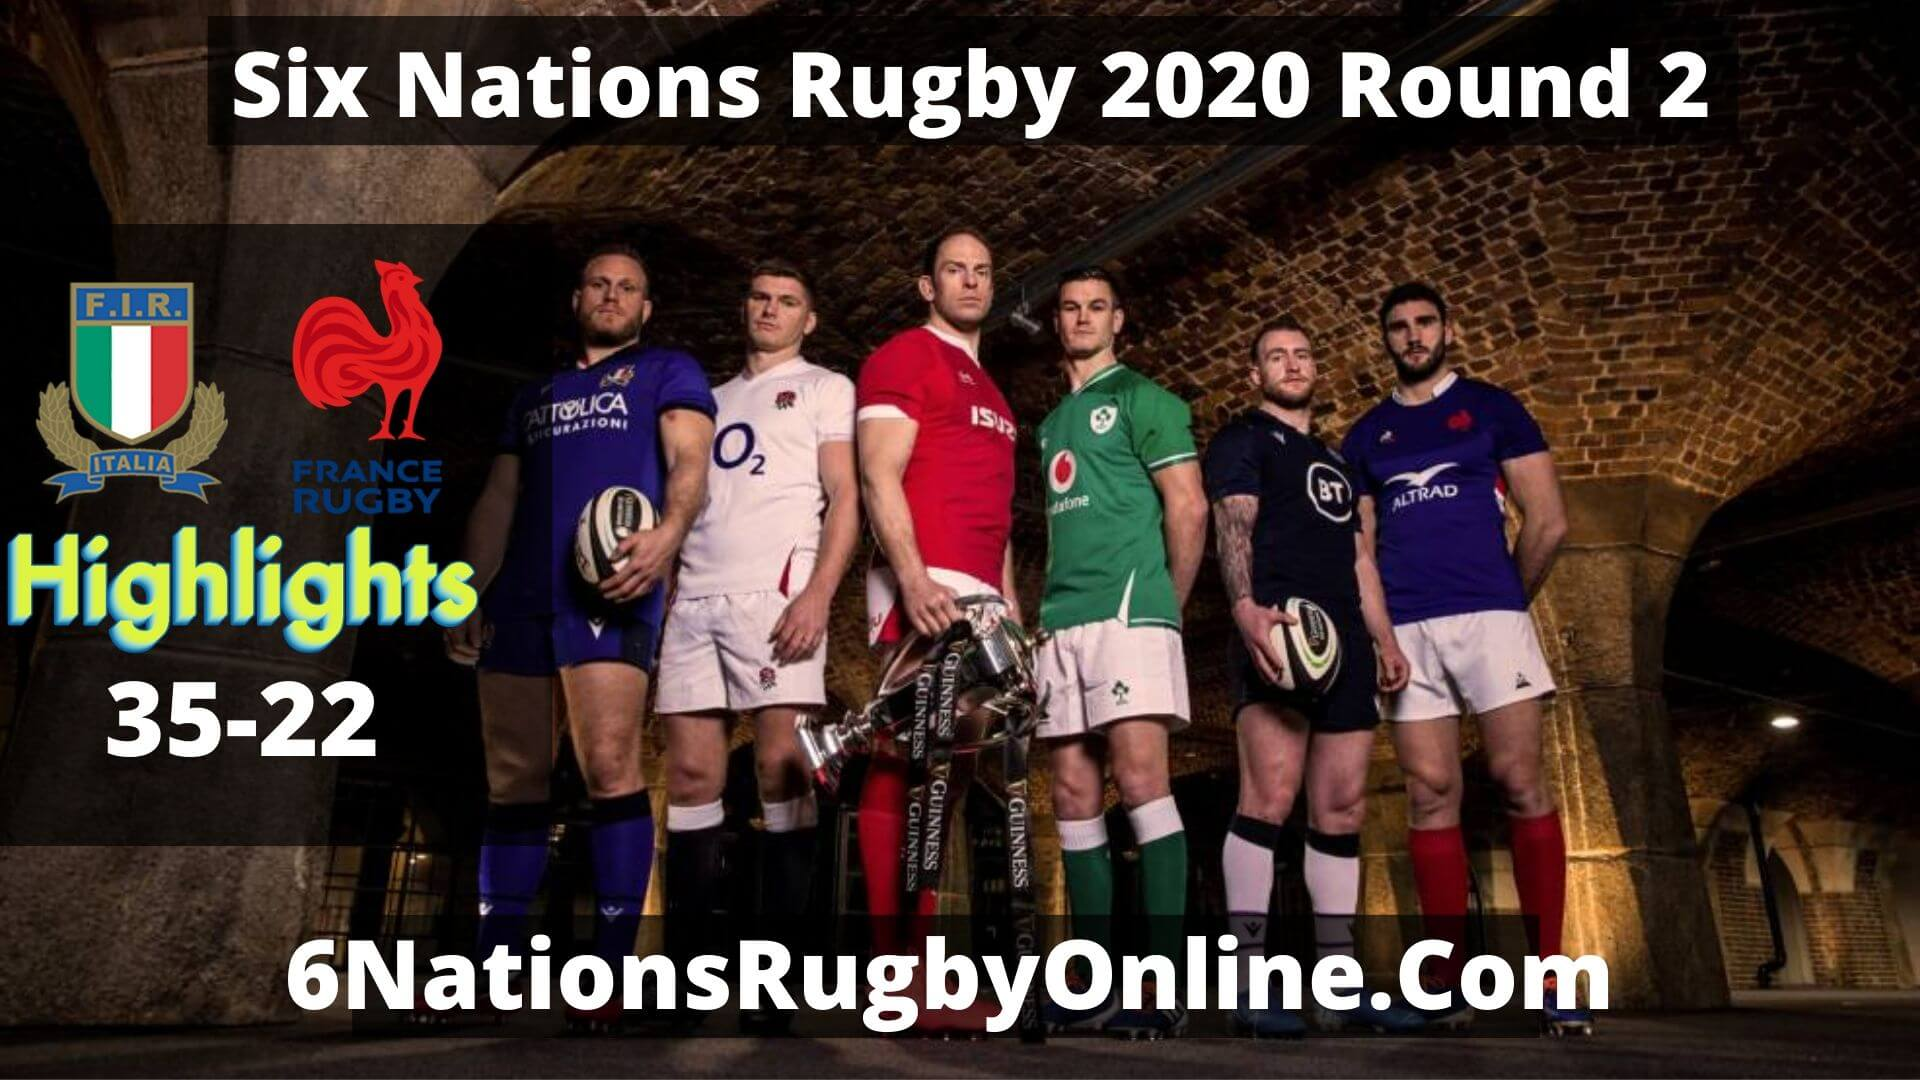 Italy Vs France Highlights 2020 Rd 2 Six Nations Rugby